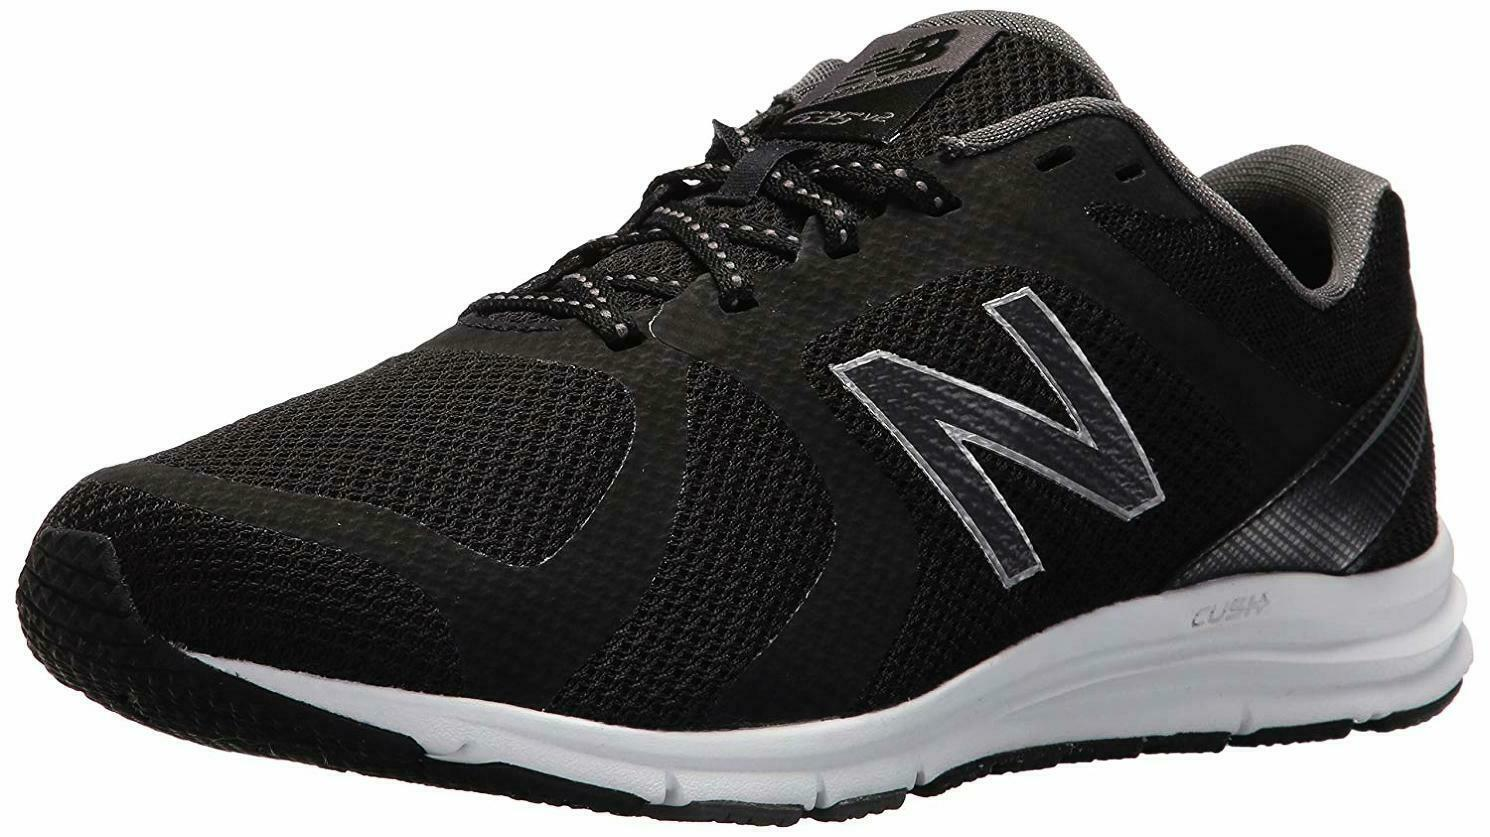 New Balance Men's 635v2 Cushioning Running shoes - Choose SZ color